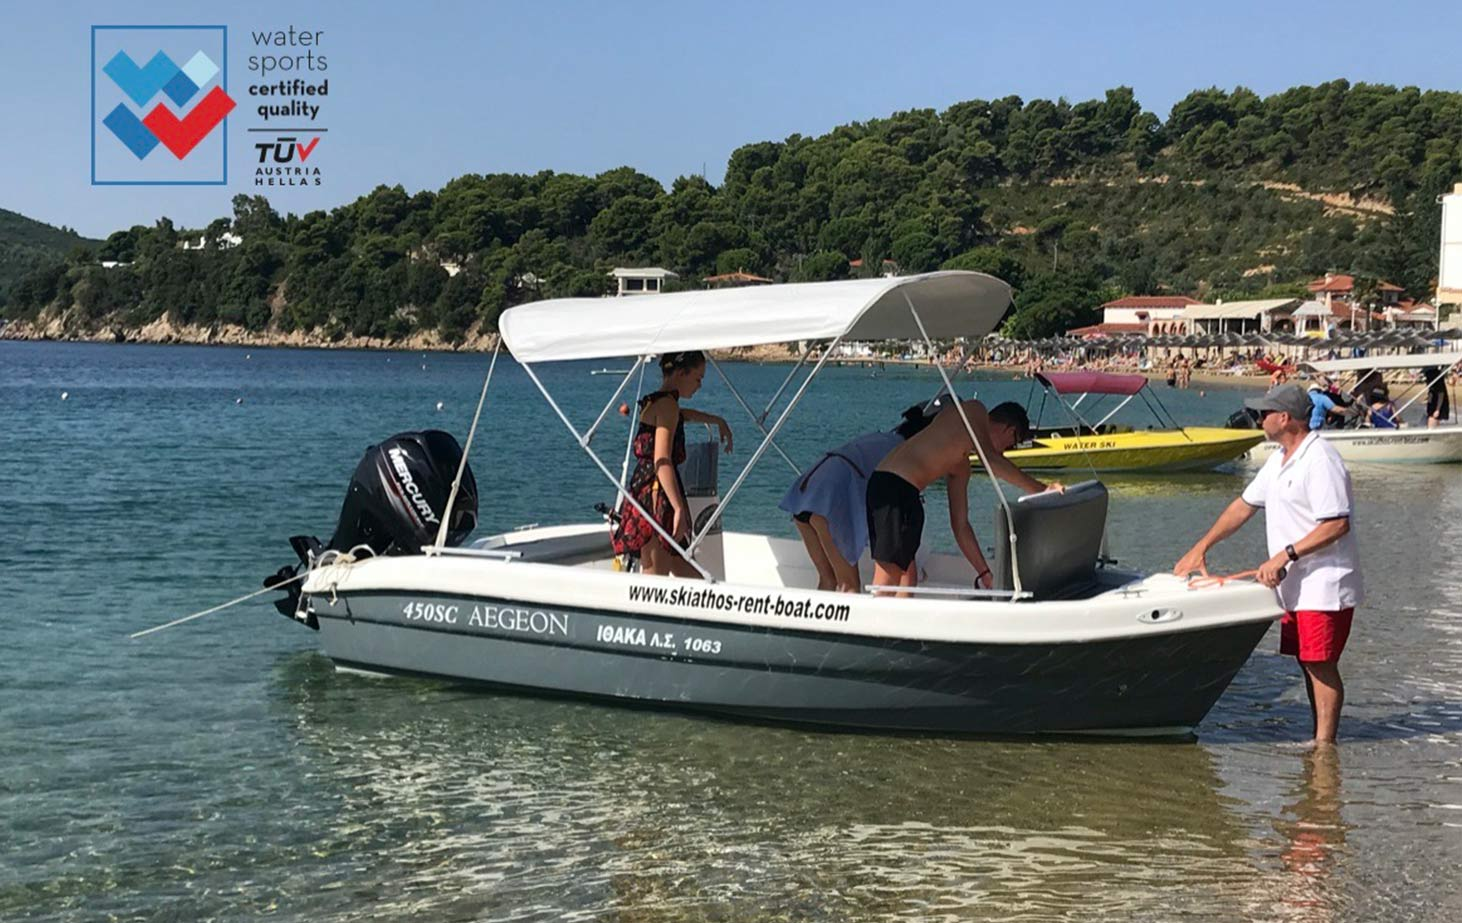 skiathos rent boats,skiathos rental boats,skiathos boat hire,skiathos speedboats,skiathos boats for hire,skiathos boats,skiathos,greece